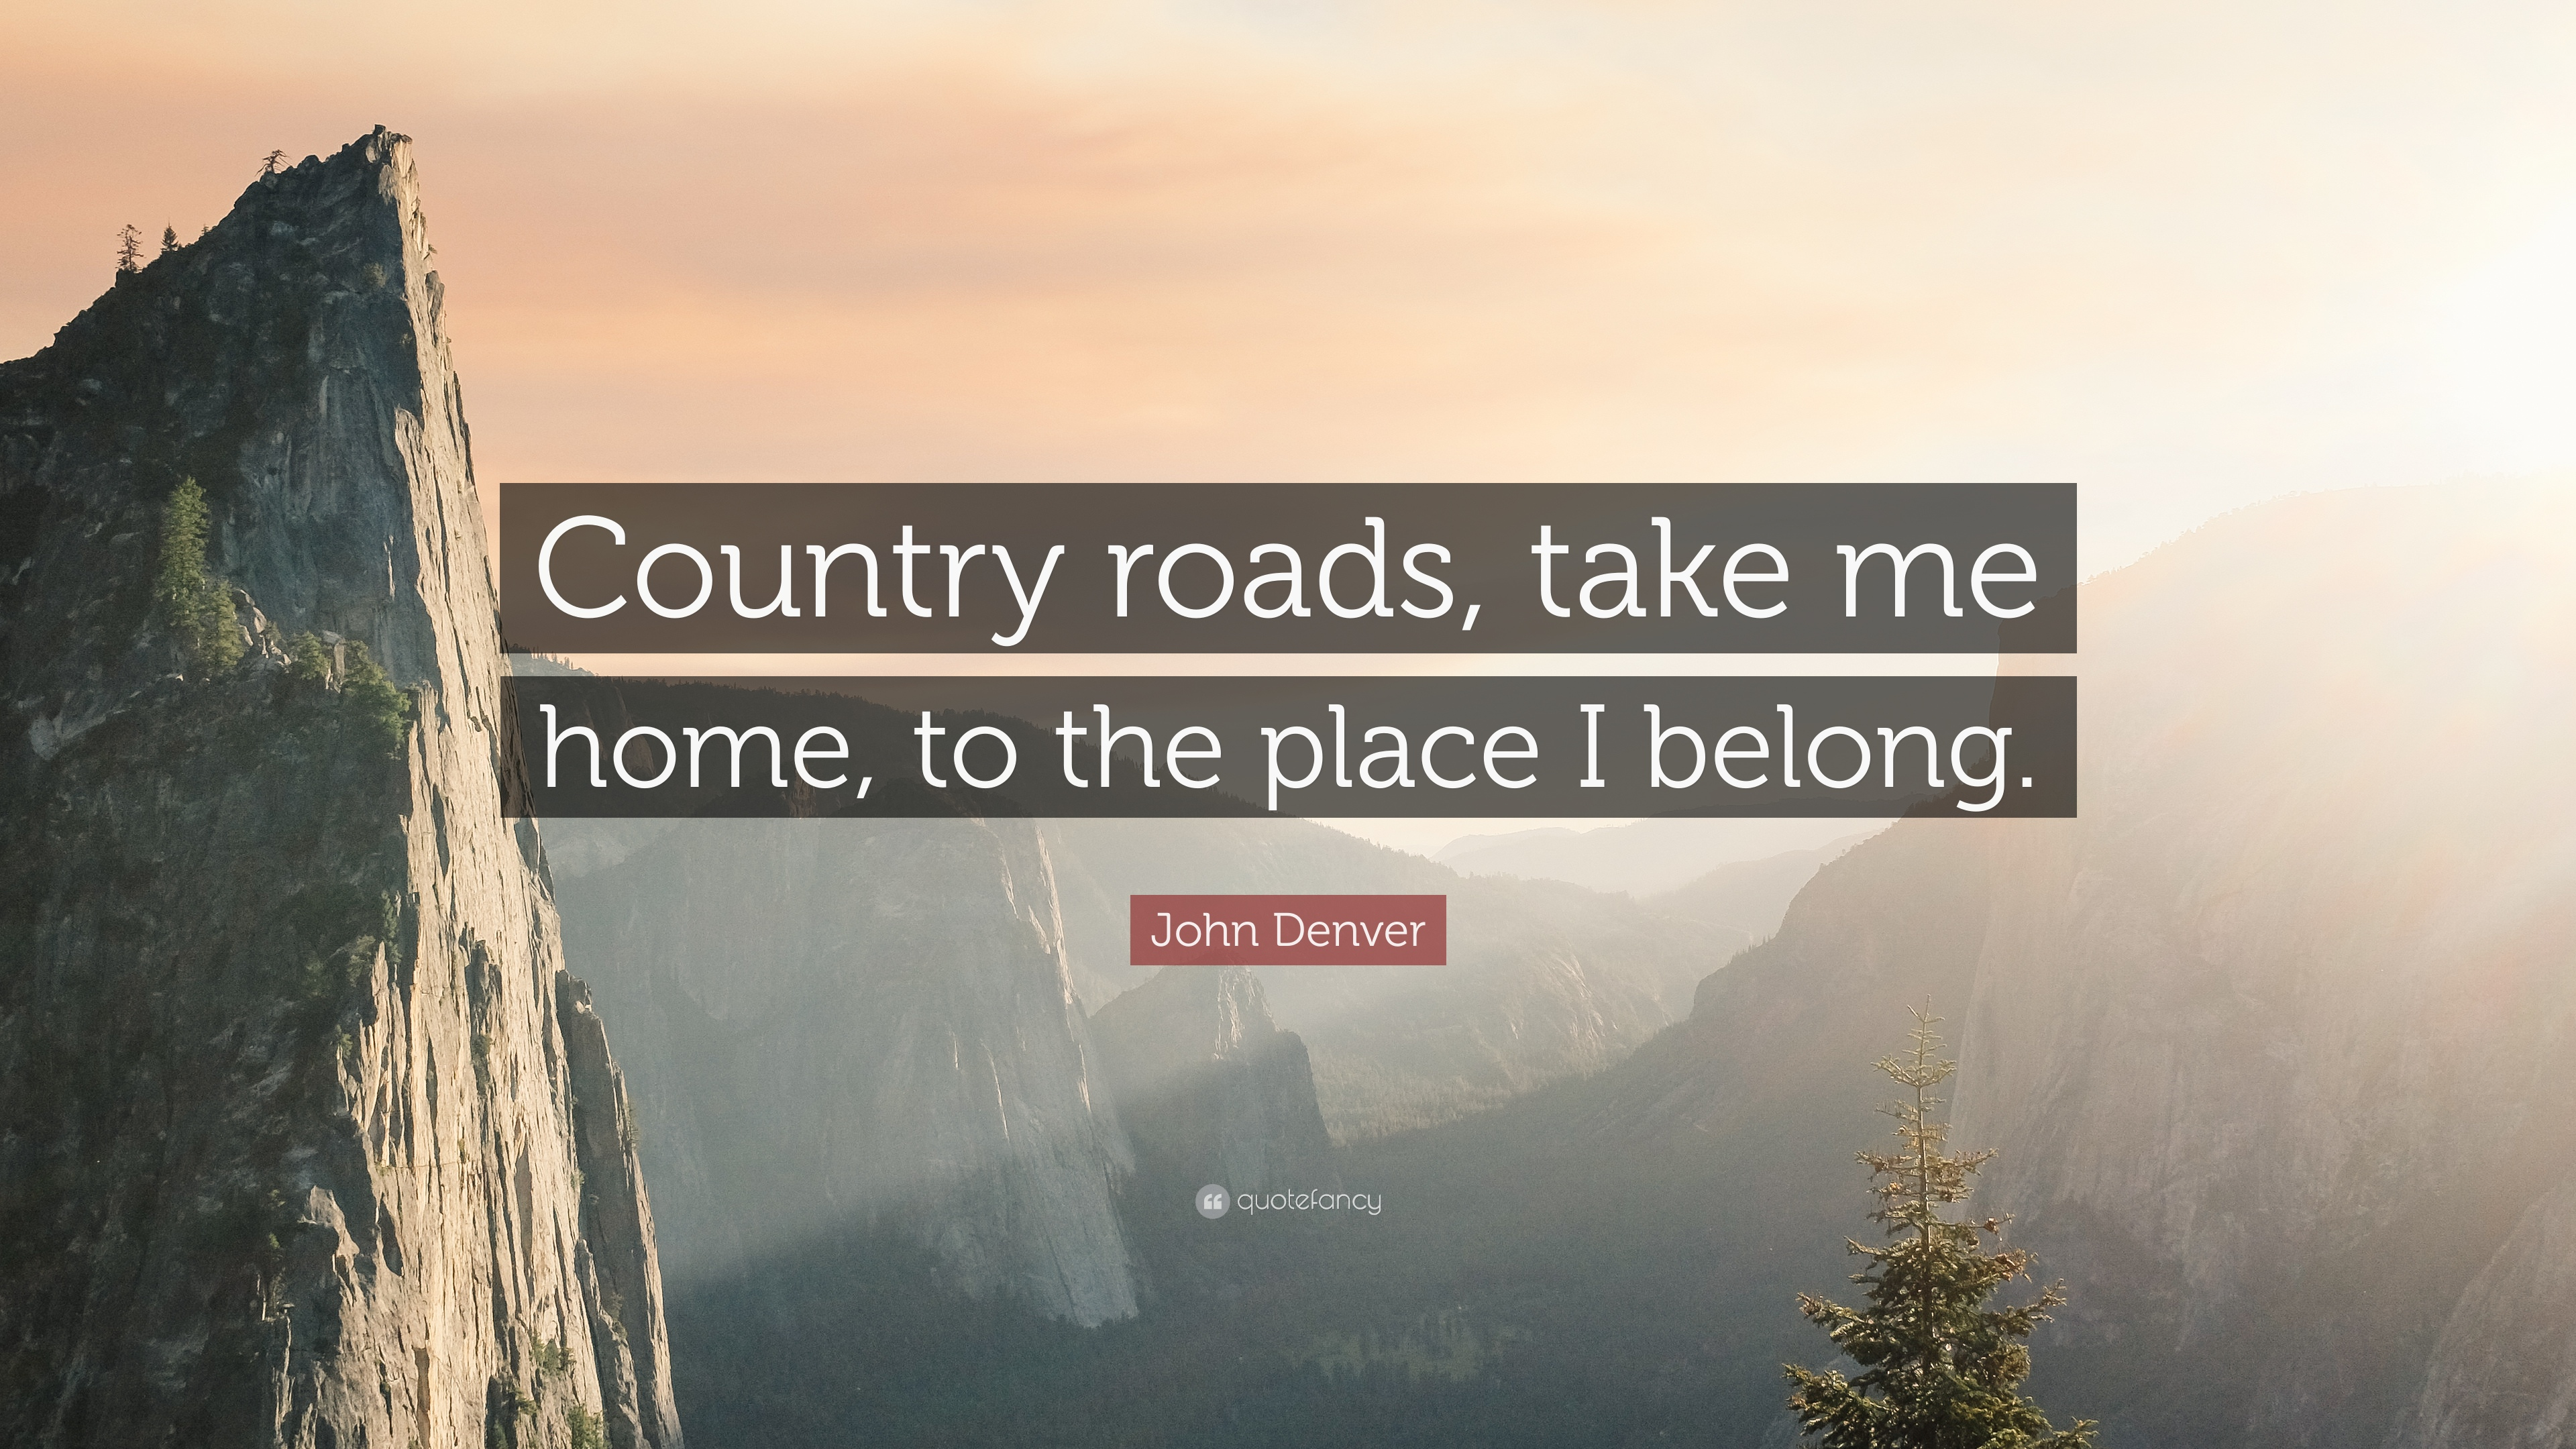 Eleanor Roosevelt Quote Wallpaper Consent John Denver Quote Country Roads Take Me Home To The